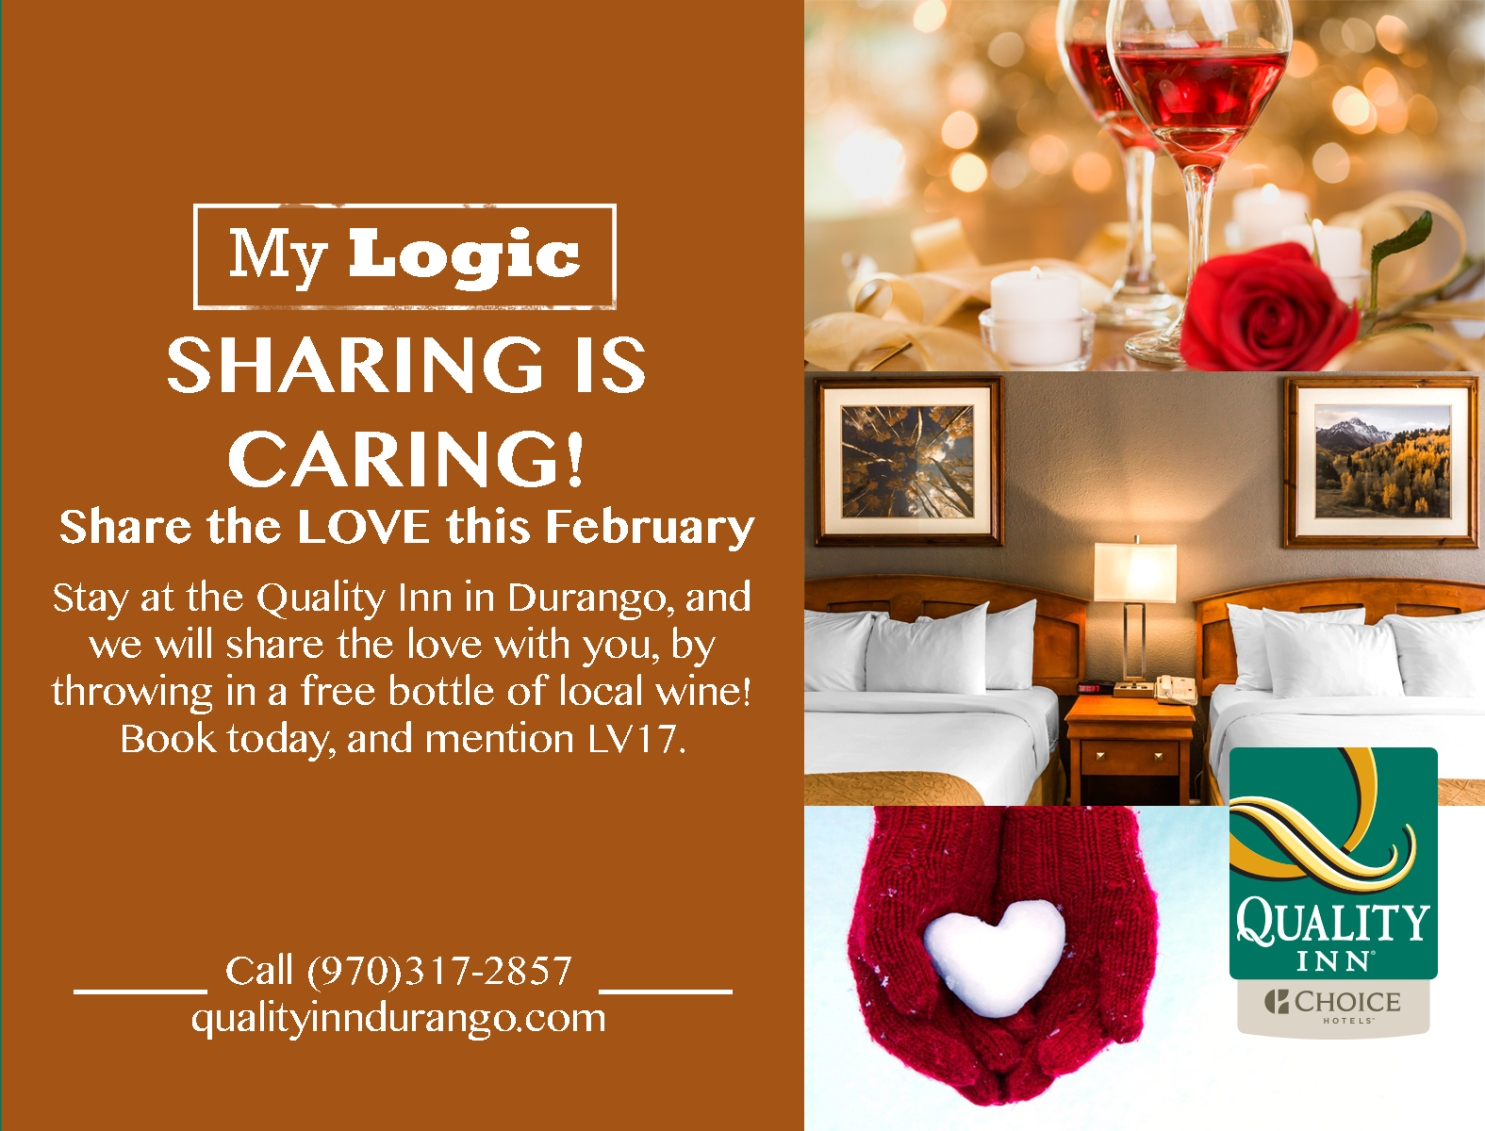 Free wine for February stays at the Quality Inn Durango